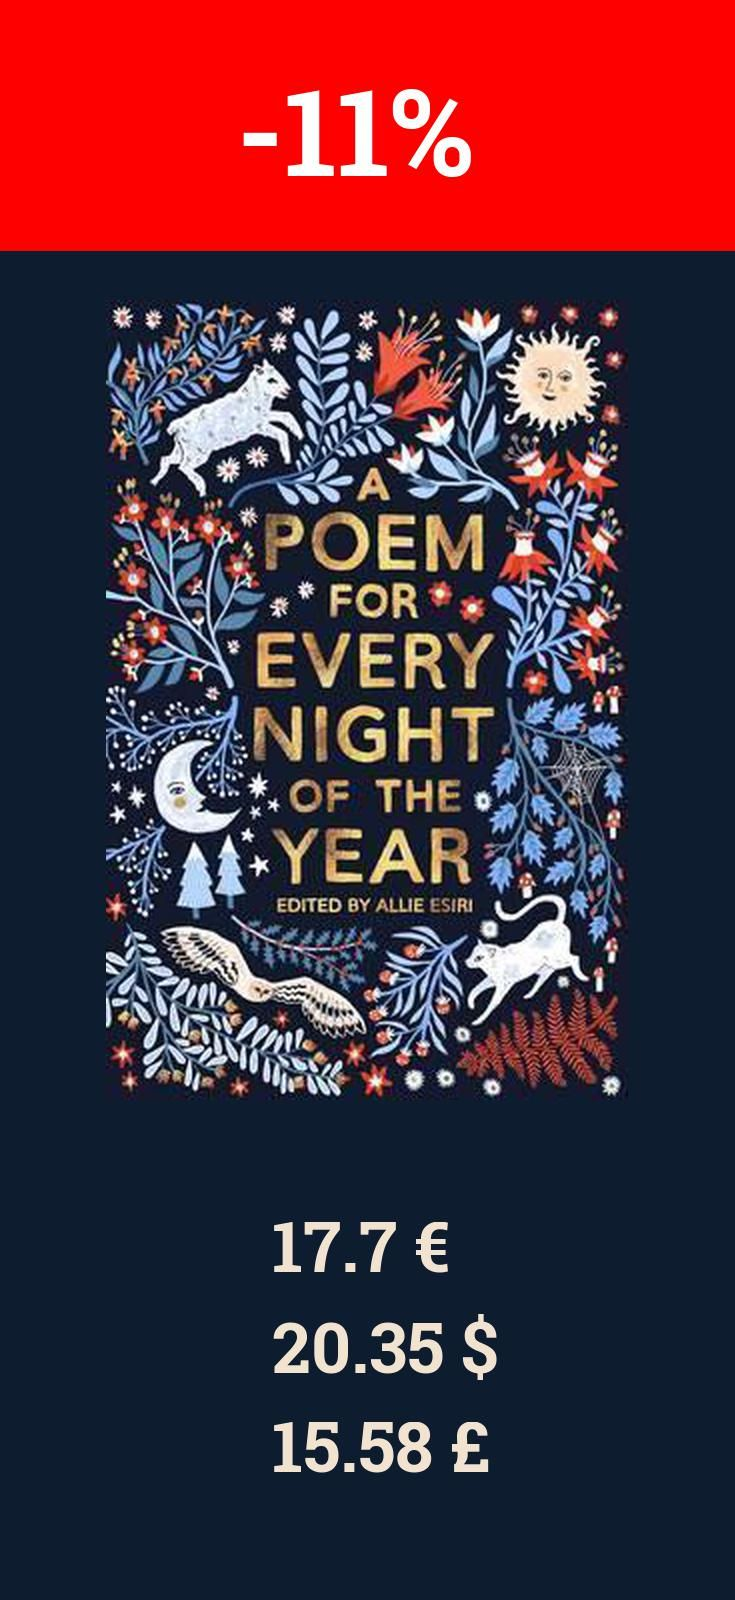 You can purchase A Poem for Every Night of for 11% less right now! Some books become lifelong treasures and A Poem for Every Night of the Year, edited by Allie Esiri, will be one of them. A handsome collection, it contains not just classics by TS Eliot and Eleanor Farjeon but modern poems by Maya Angelou and Tony Mitton. It is the best book of its kind since Charles Causley s, and a must-have for nine-plus readers. -- Amanda Craig The New Statesman Allie Esiri s delightfully eclectic…